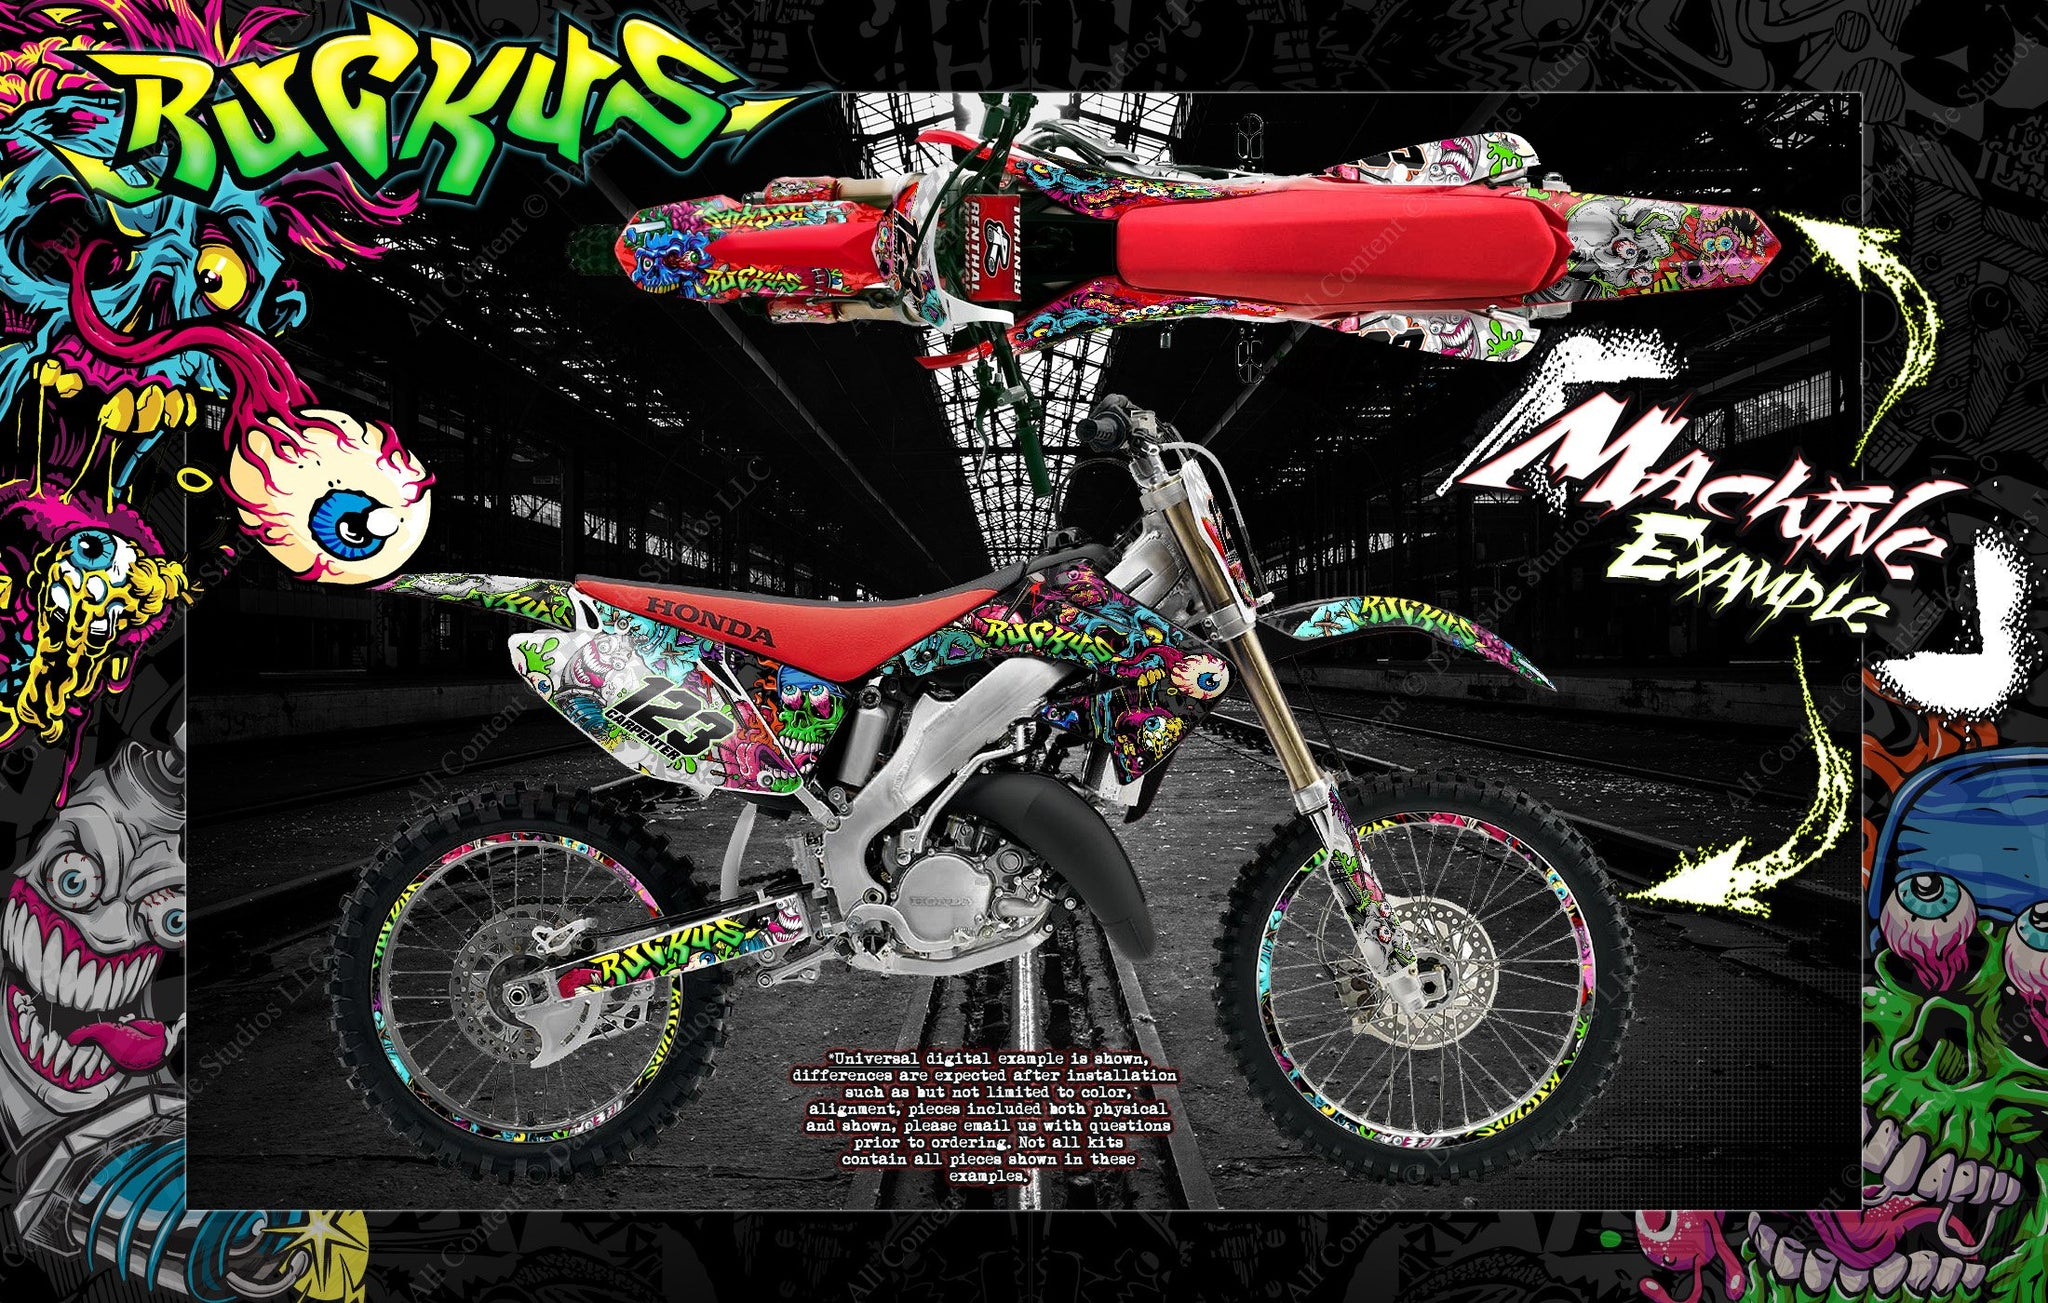 HONDA 1998-1999 CR125 & 1997-1999 CR250 GRAPHICS & DECALS